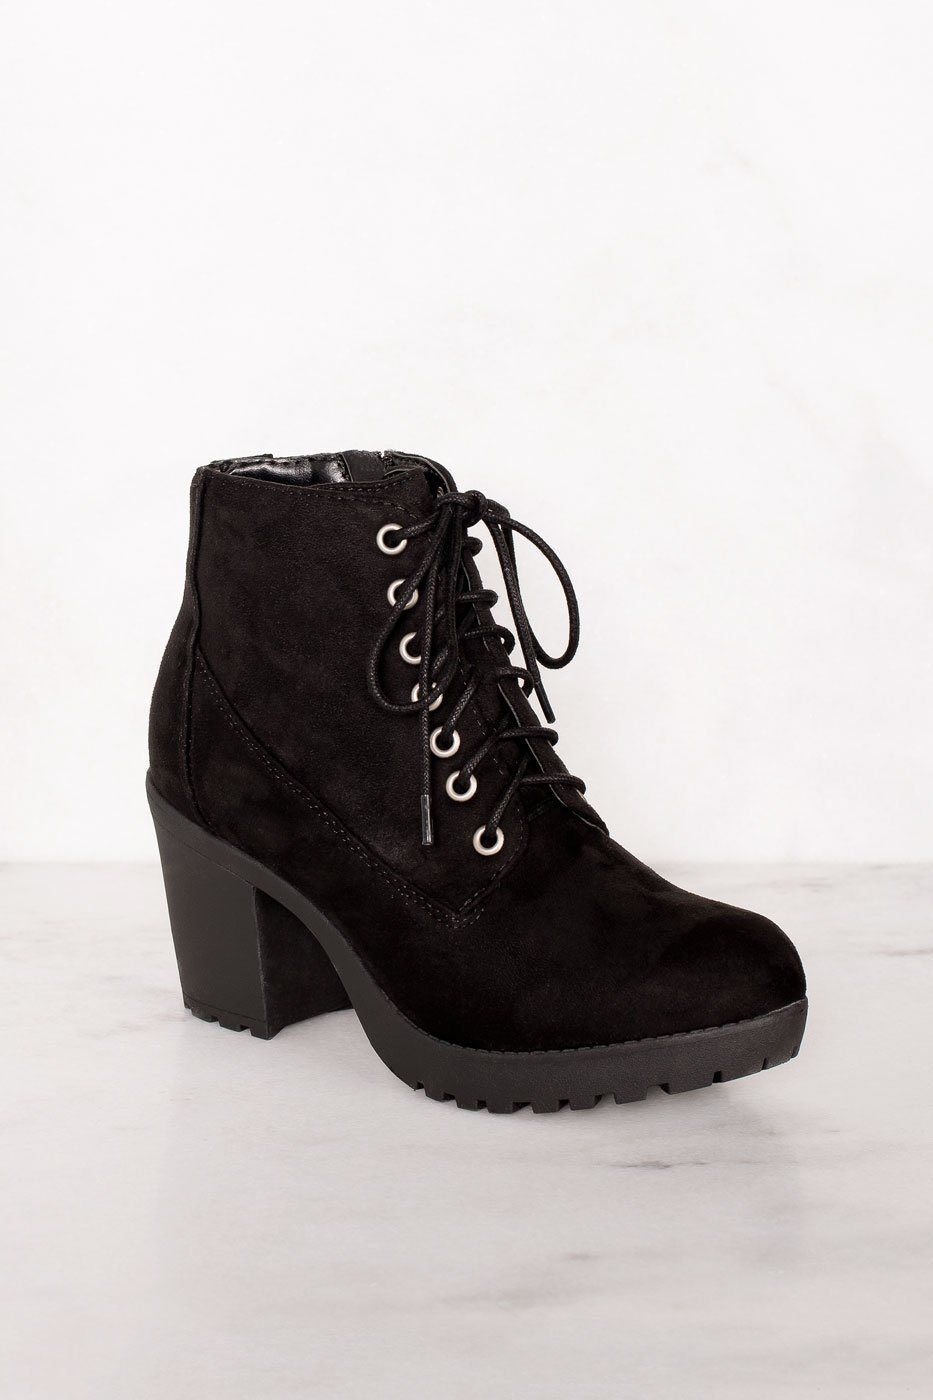 Charlize Black Suede Lace Up Booties by